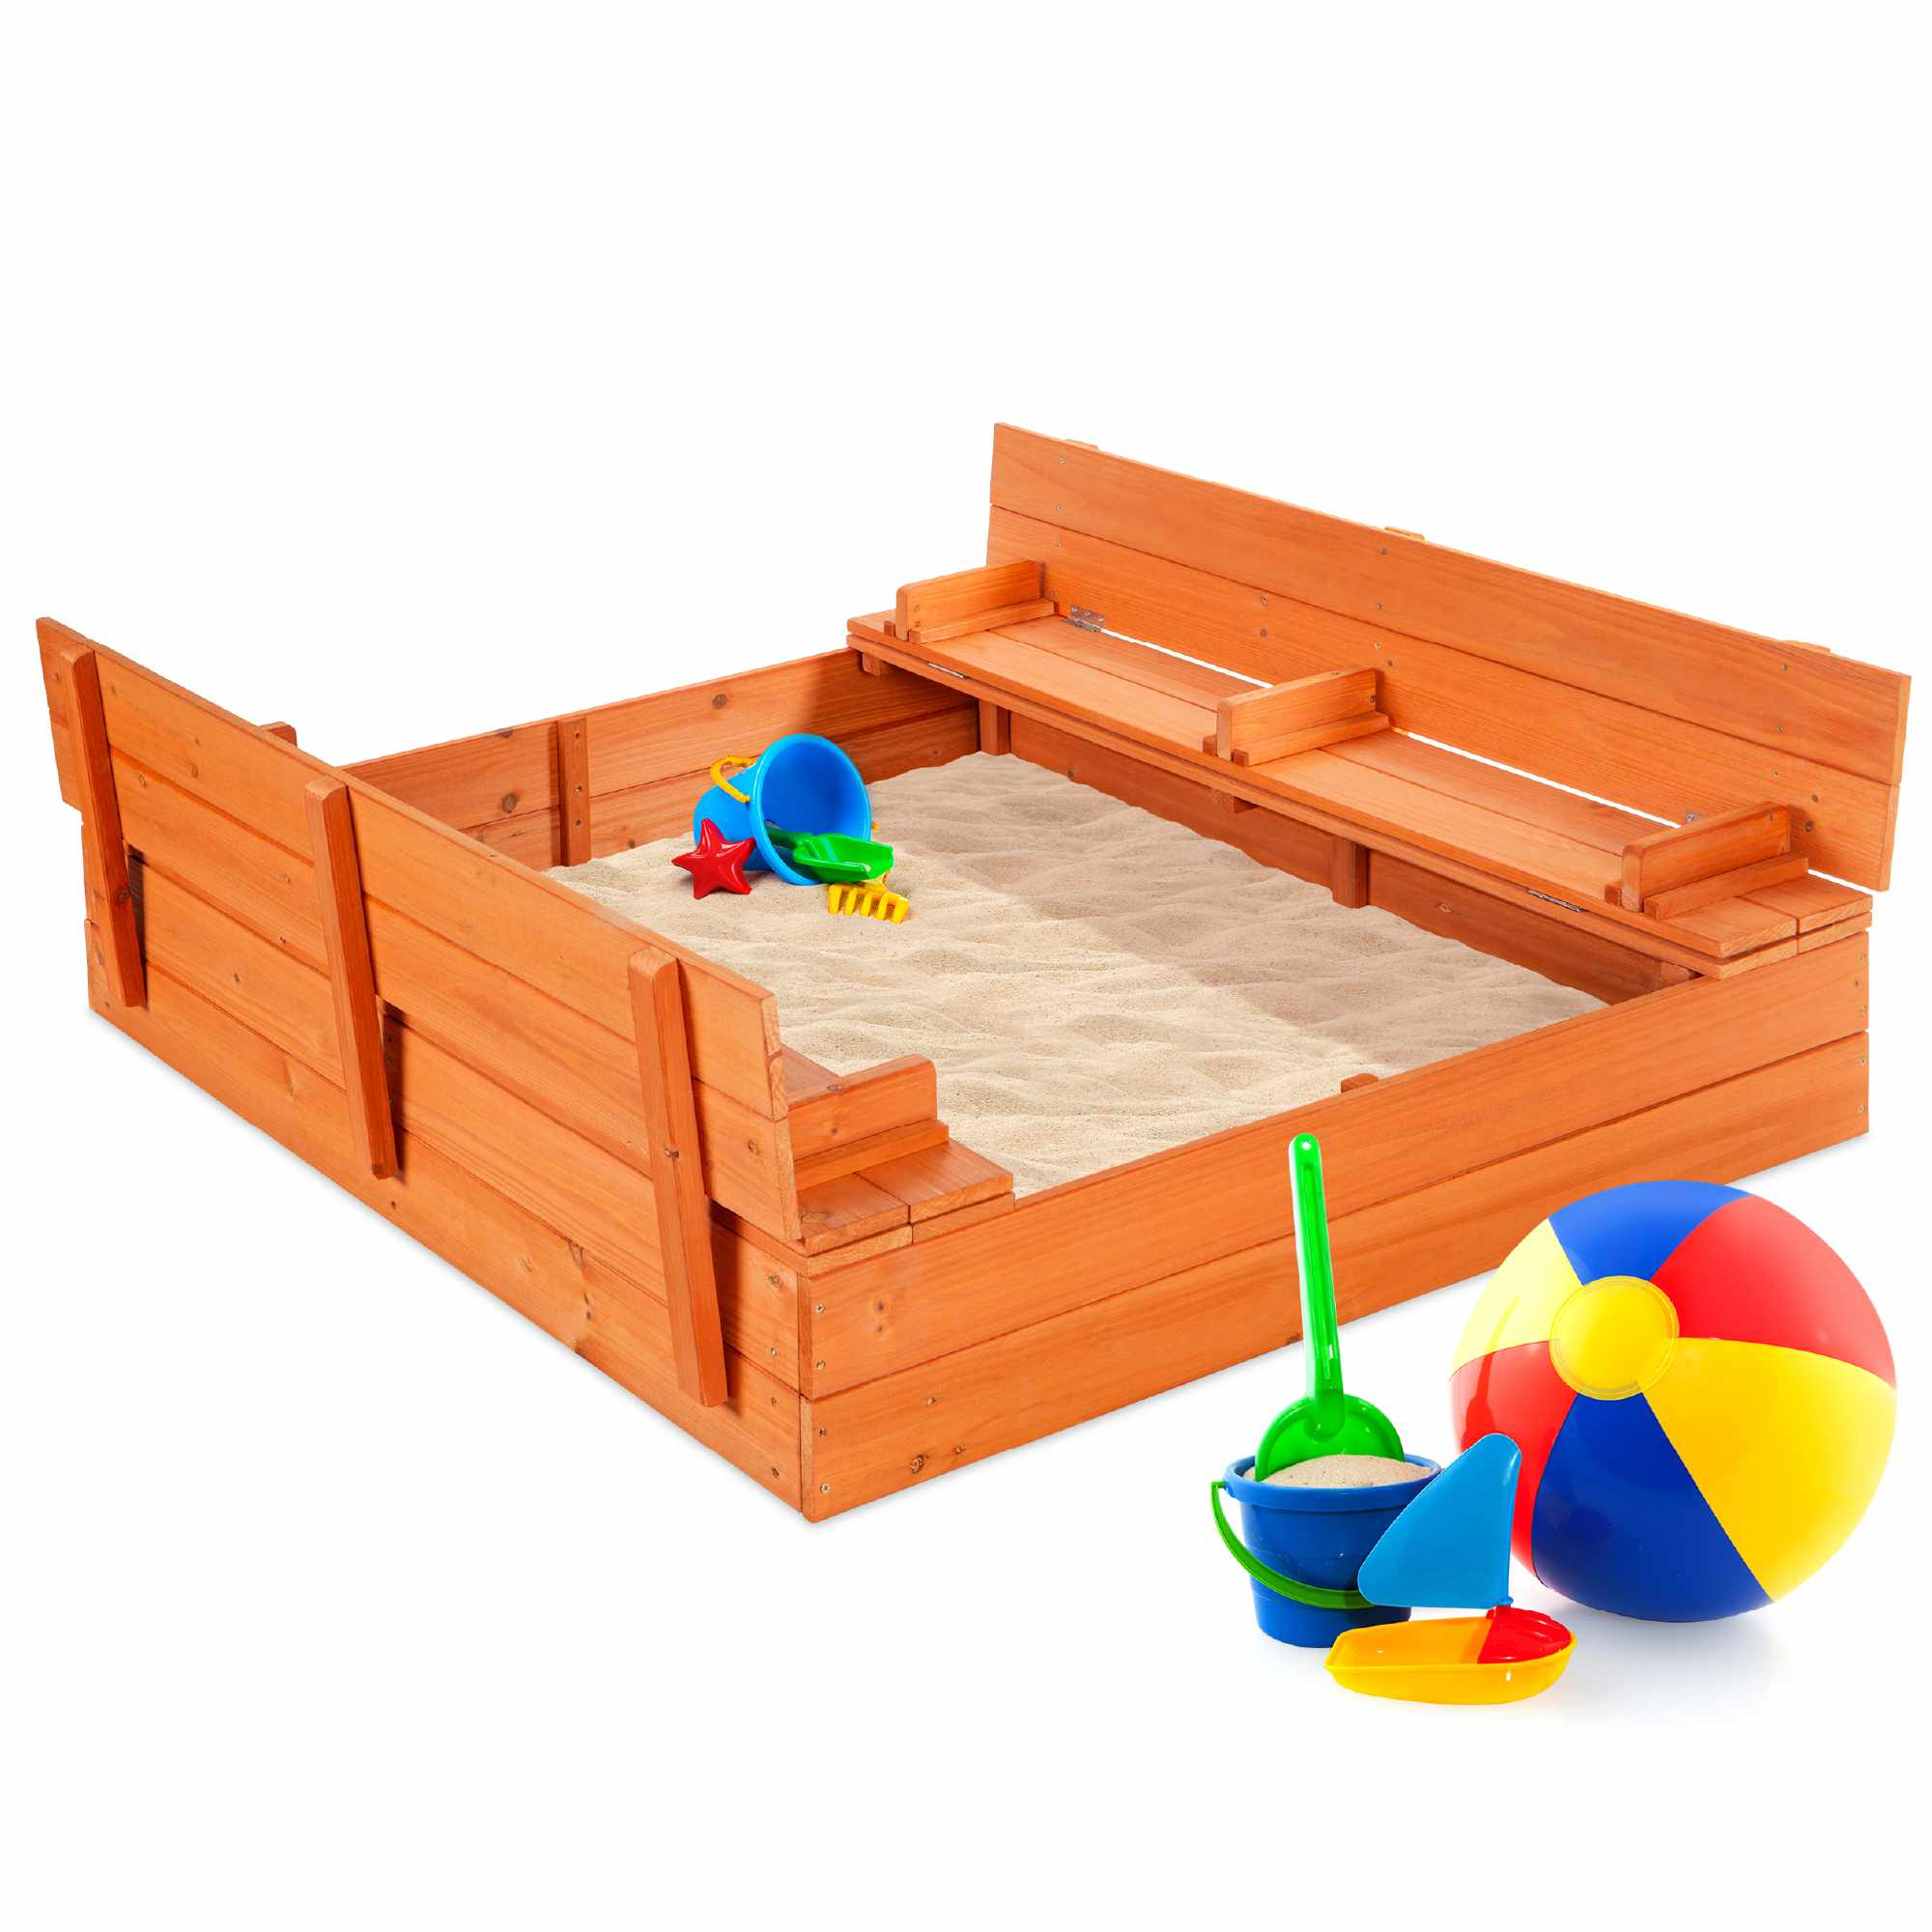 Best Choice Products Wooden Outdoor Sandbox with Foldable Bench Seats